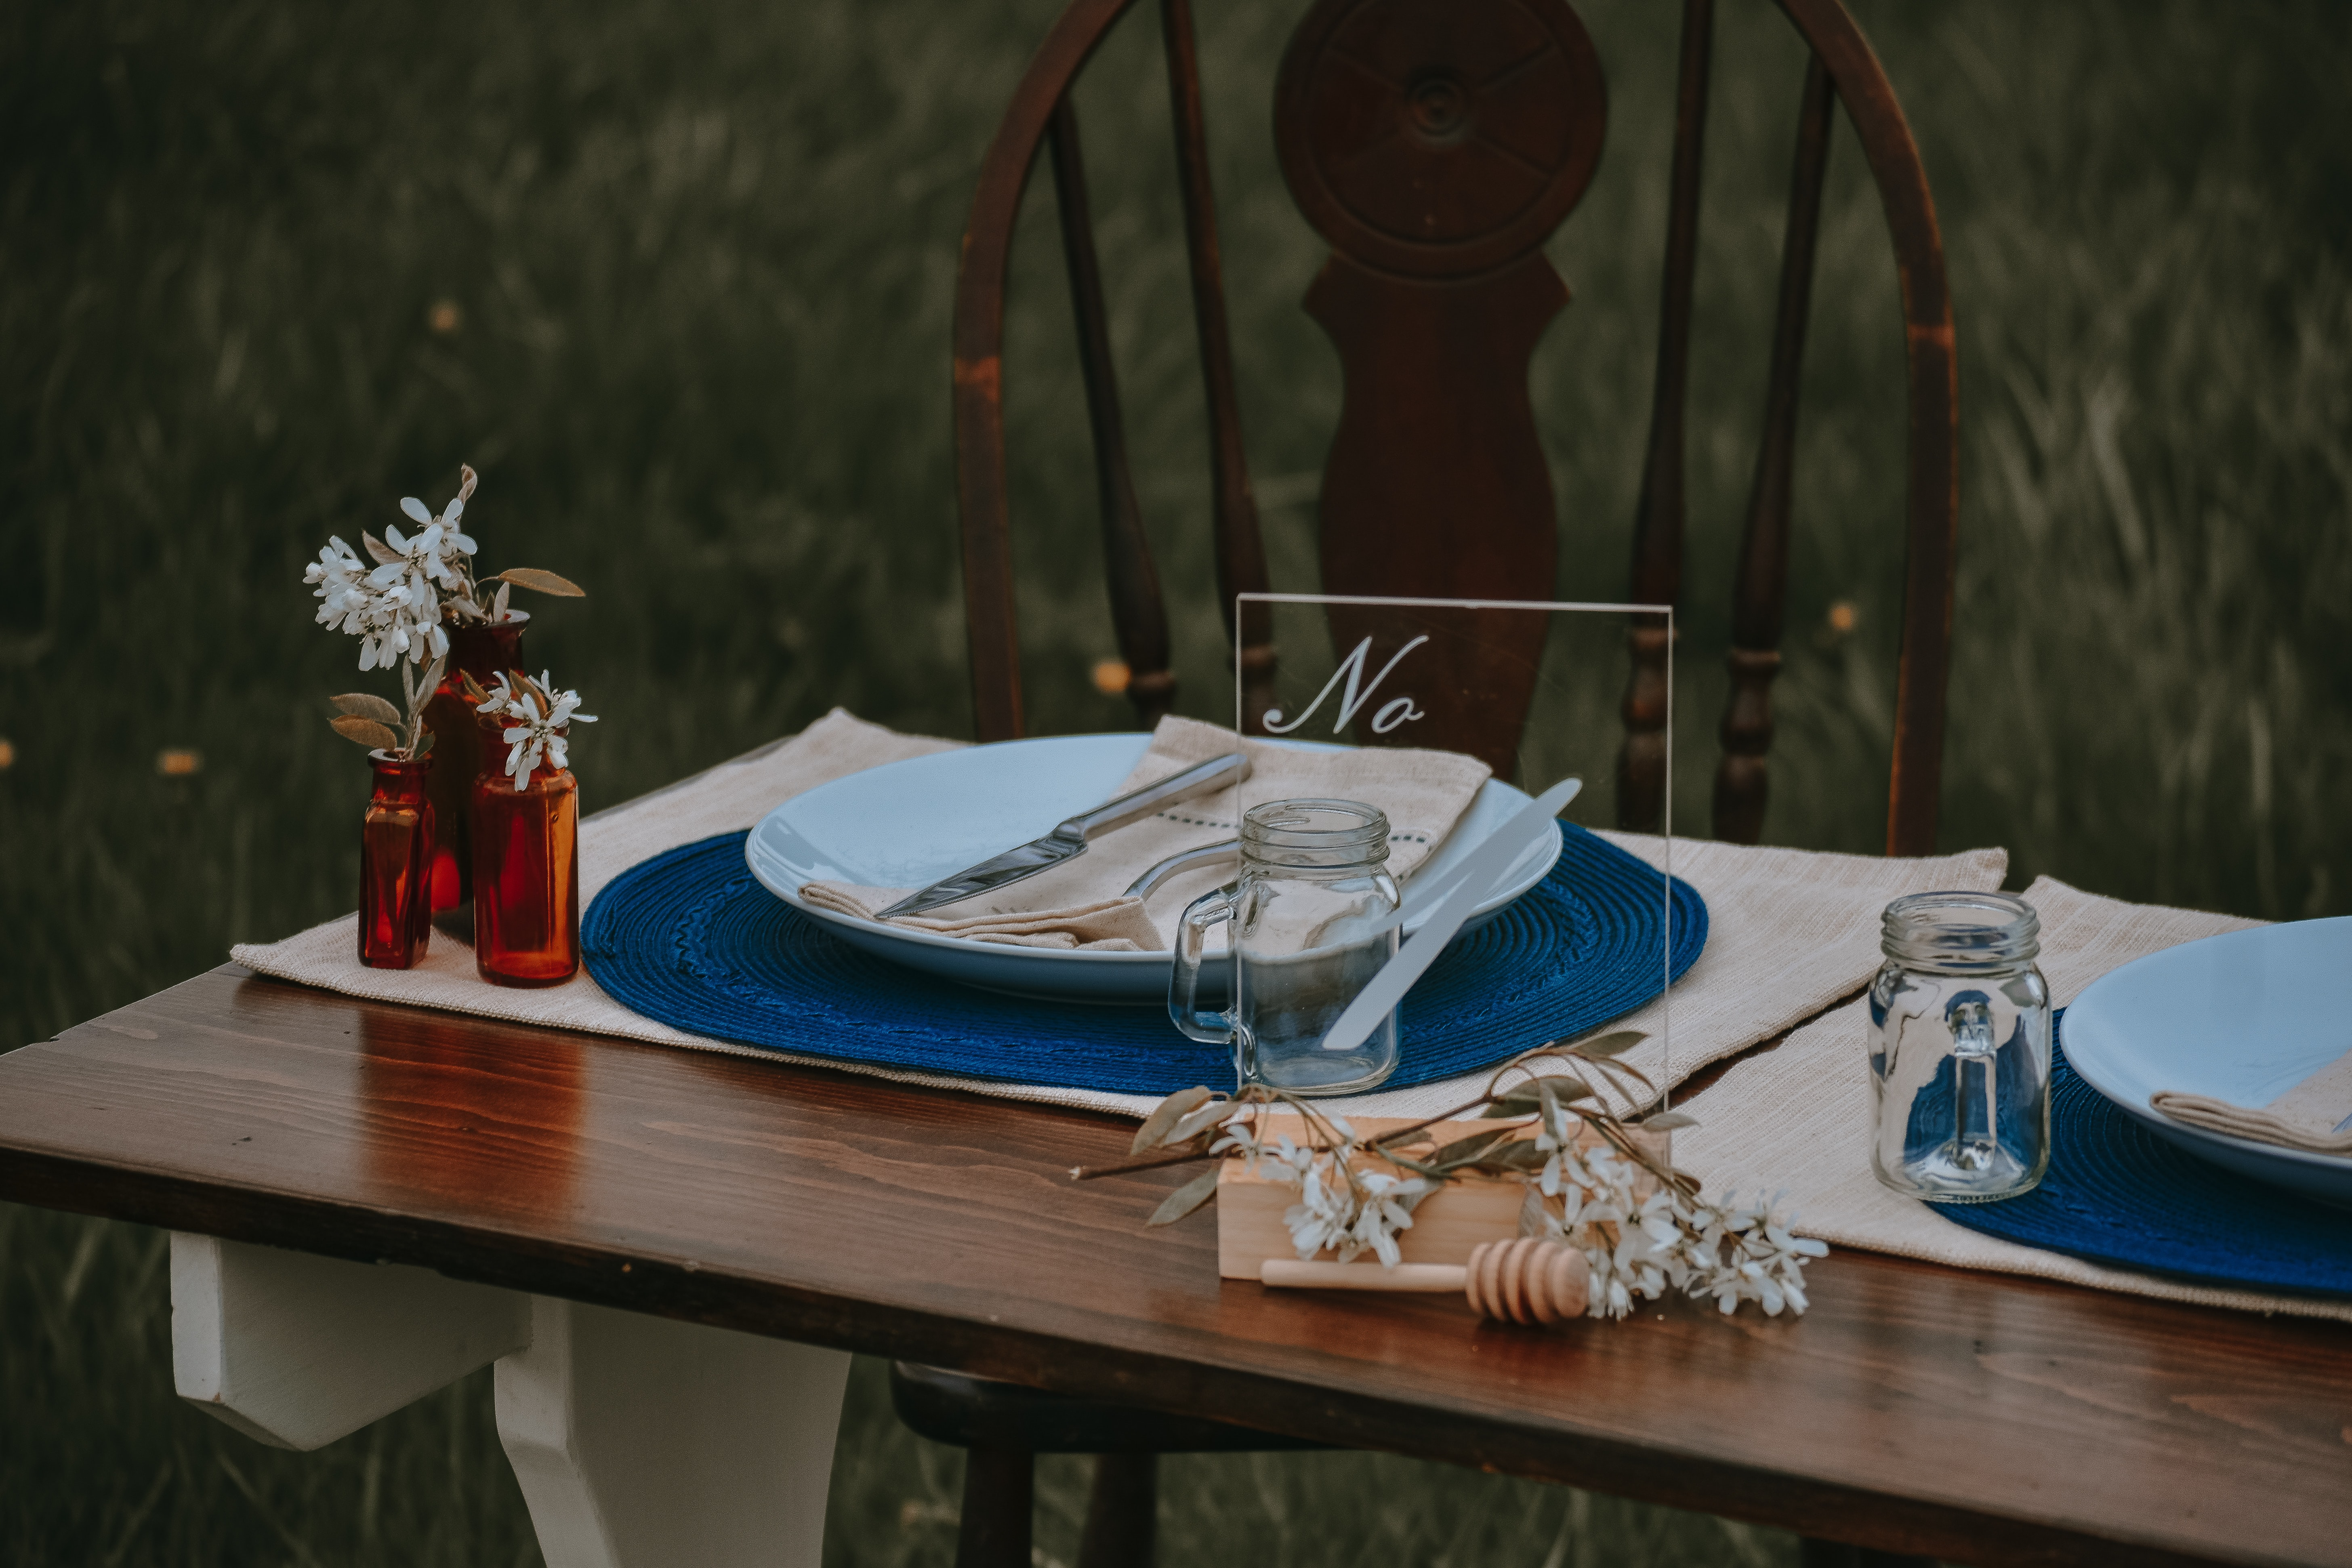 round ceramic table with silver spoon and fork